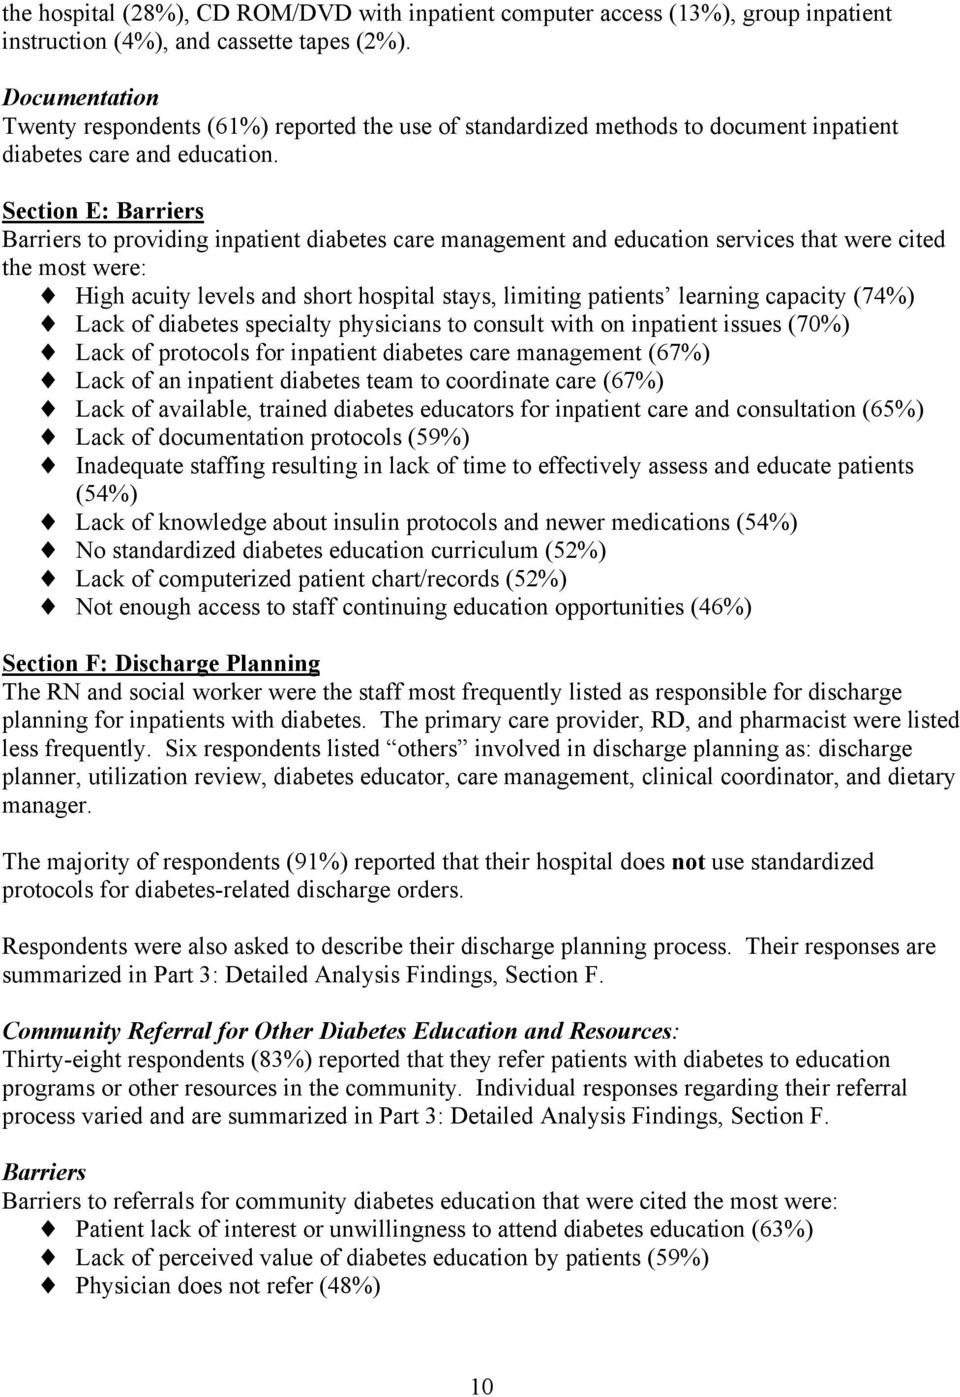 Section E: Barriers Barriers to providing inpatient diabetes care management and education services that were cited the most were: High acuity levels and short hospital stays, limiting patients